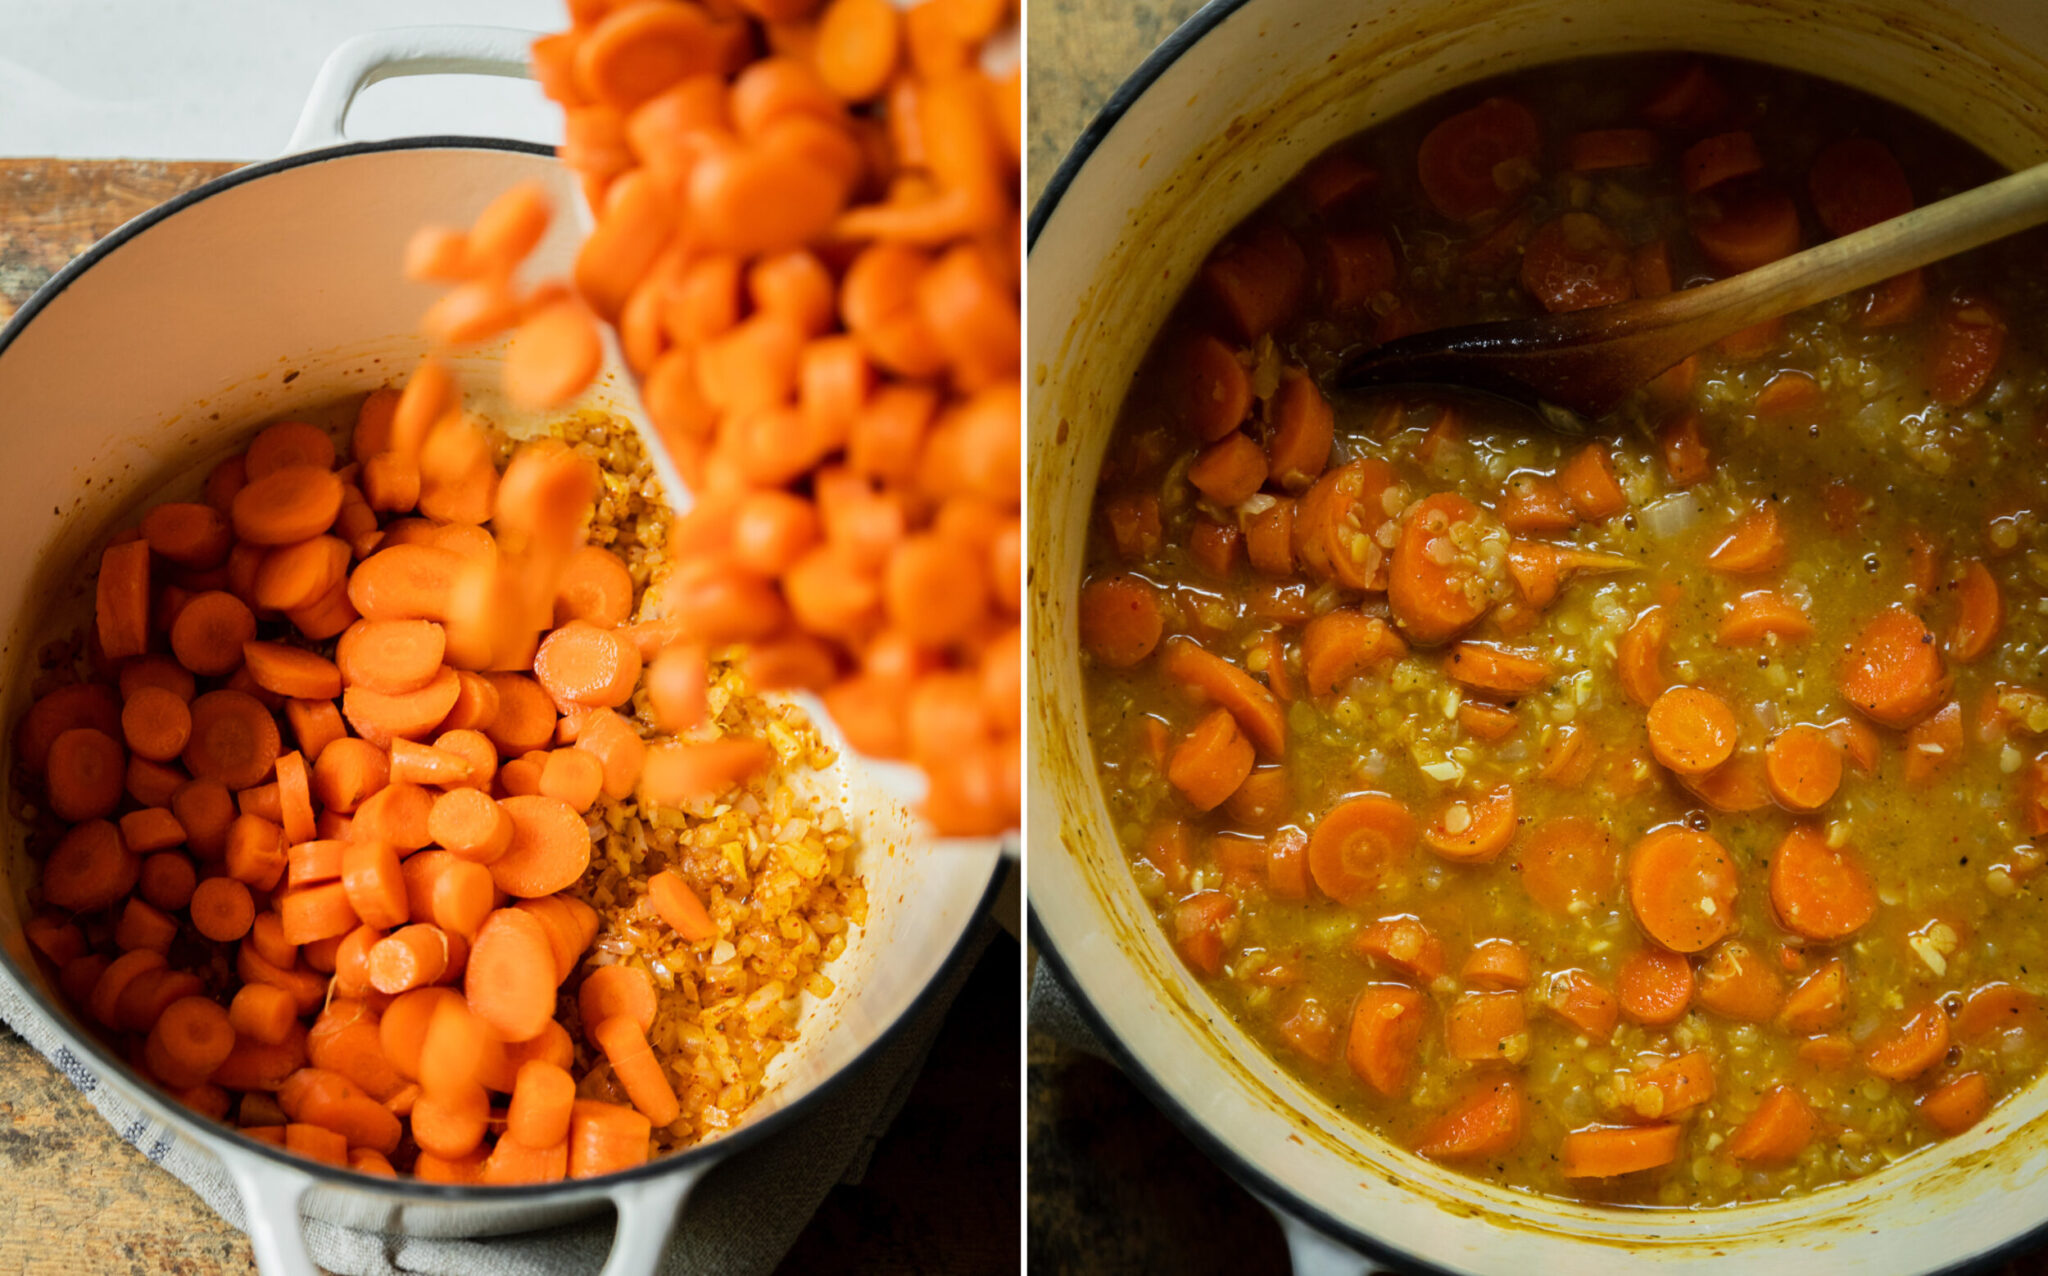 Two images show chopped carrots being poured into a pot and a fully cooked pot of carrots, lentils, and broth.